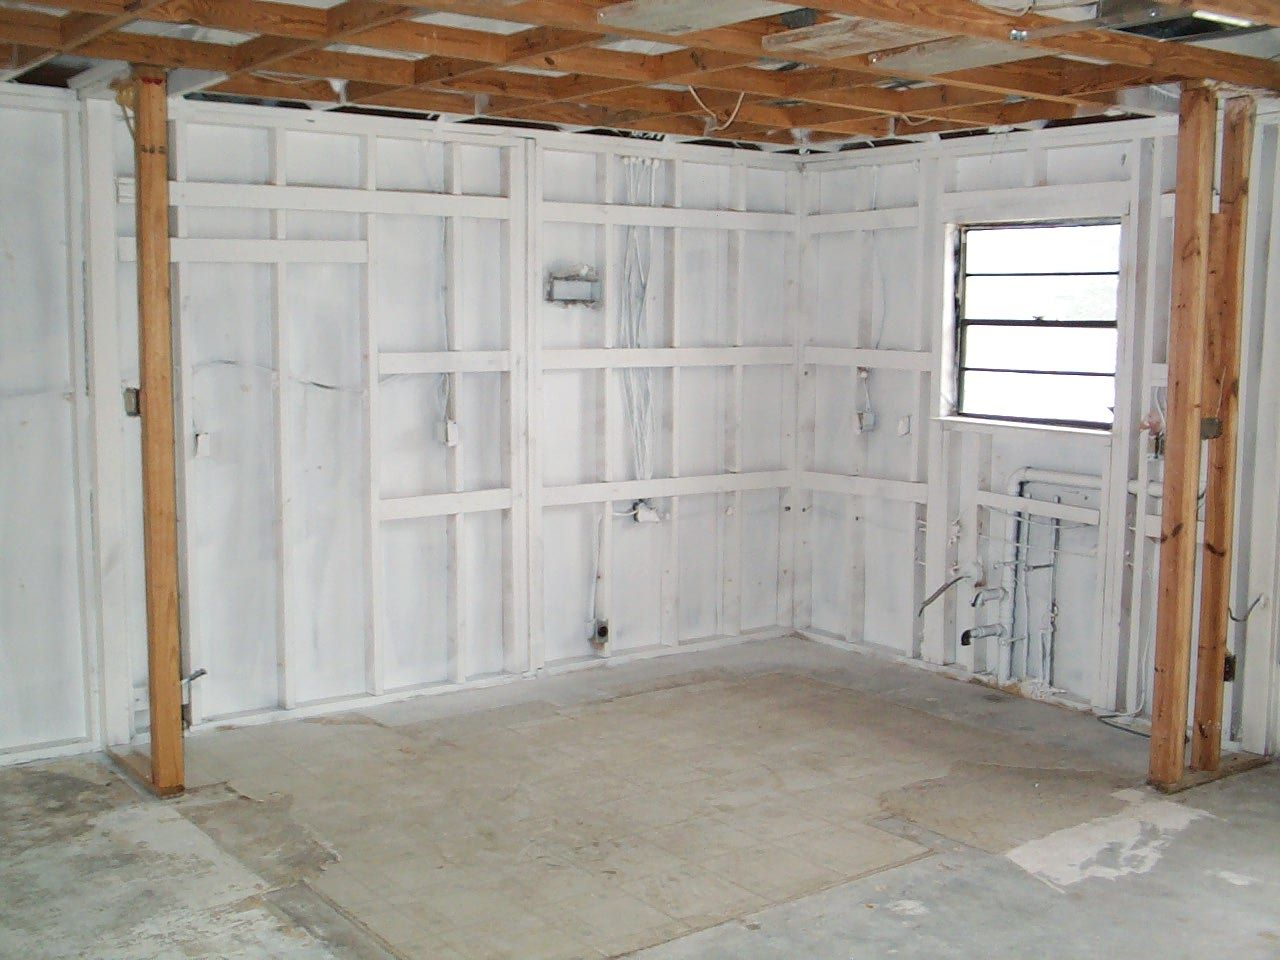 All Outer Walls Are Spayed With A Mold Resistant Paint After The House Has The Mold Eradicated In 5 Days And To The Tune Of Mold Resistant Paint House Molding